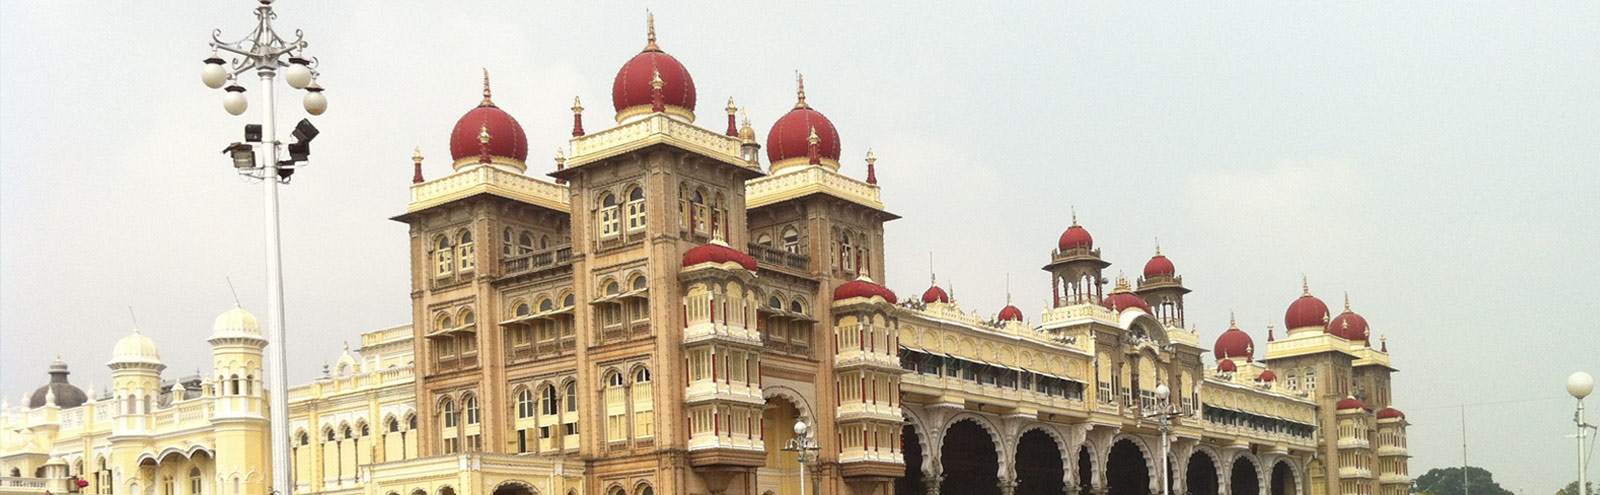 Mysore Palace journey by The Southern Jewels India